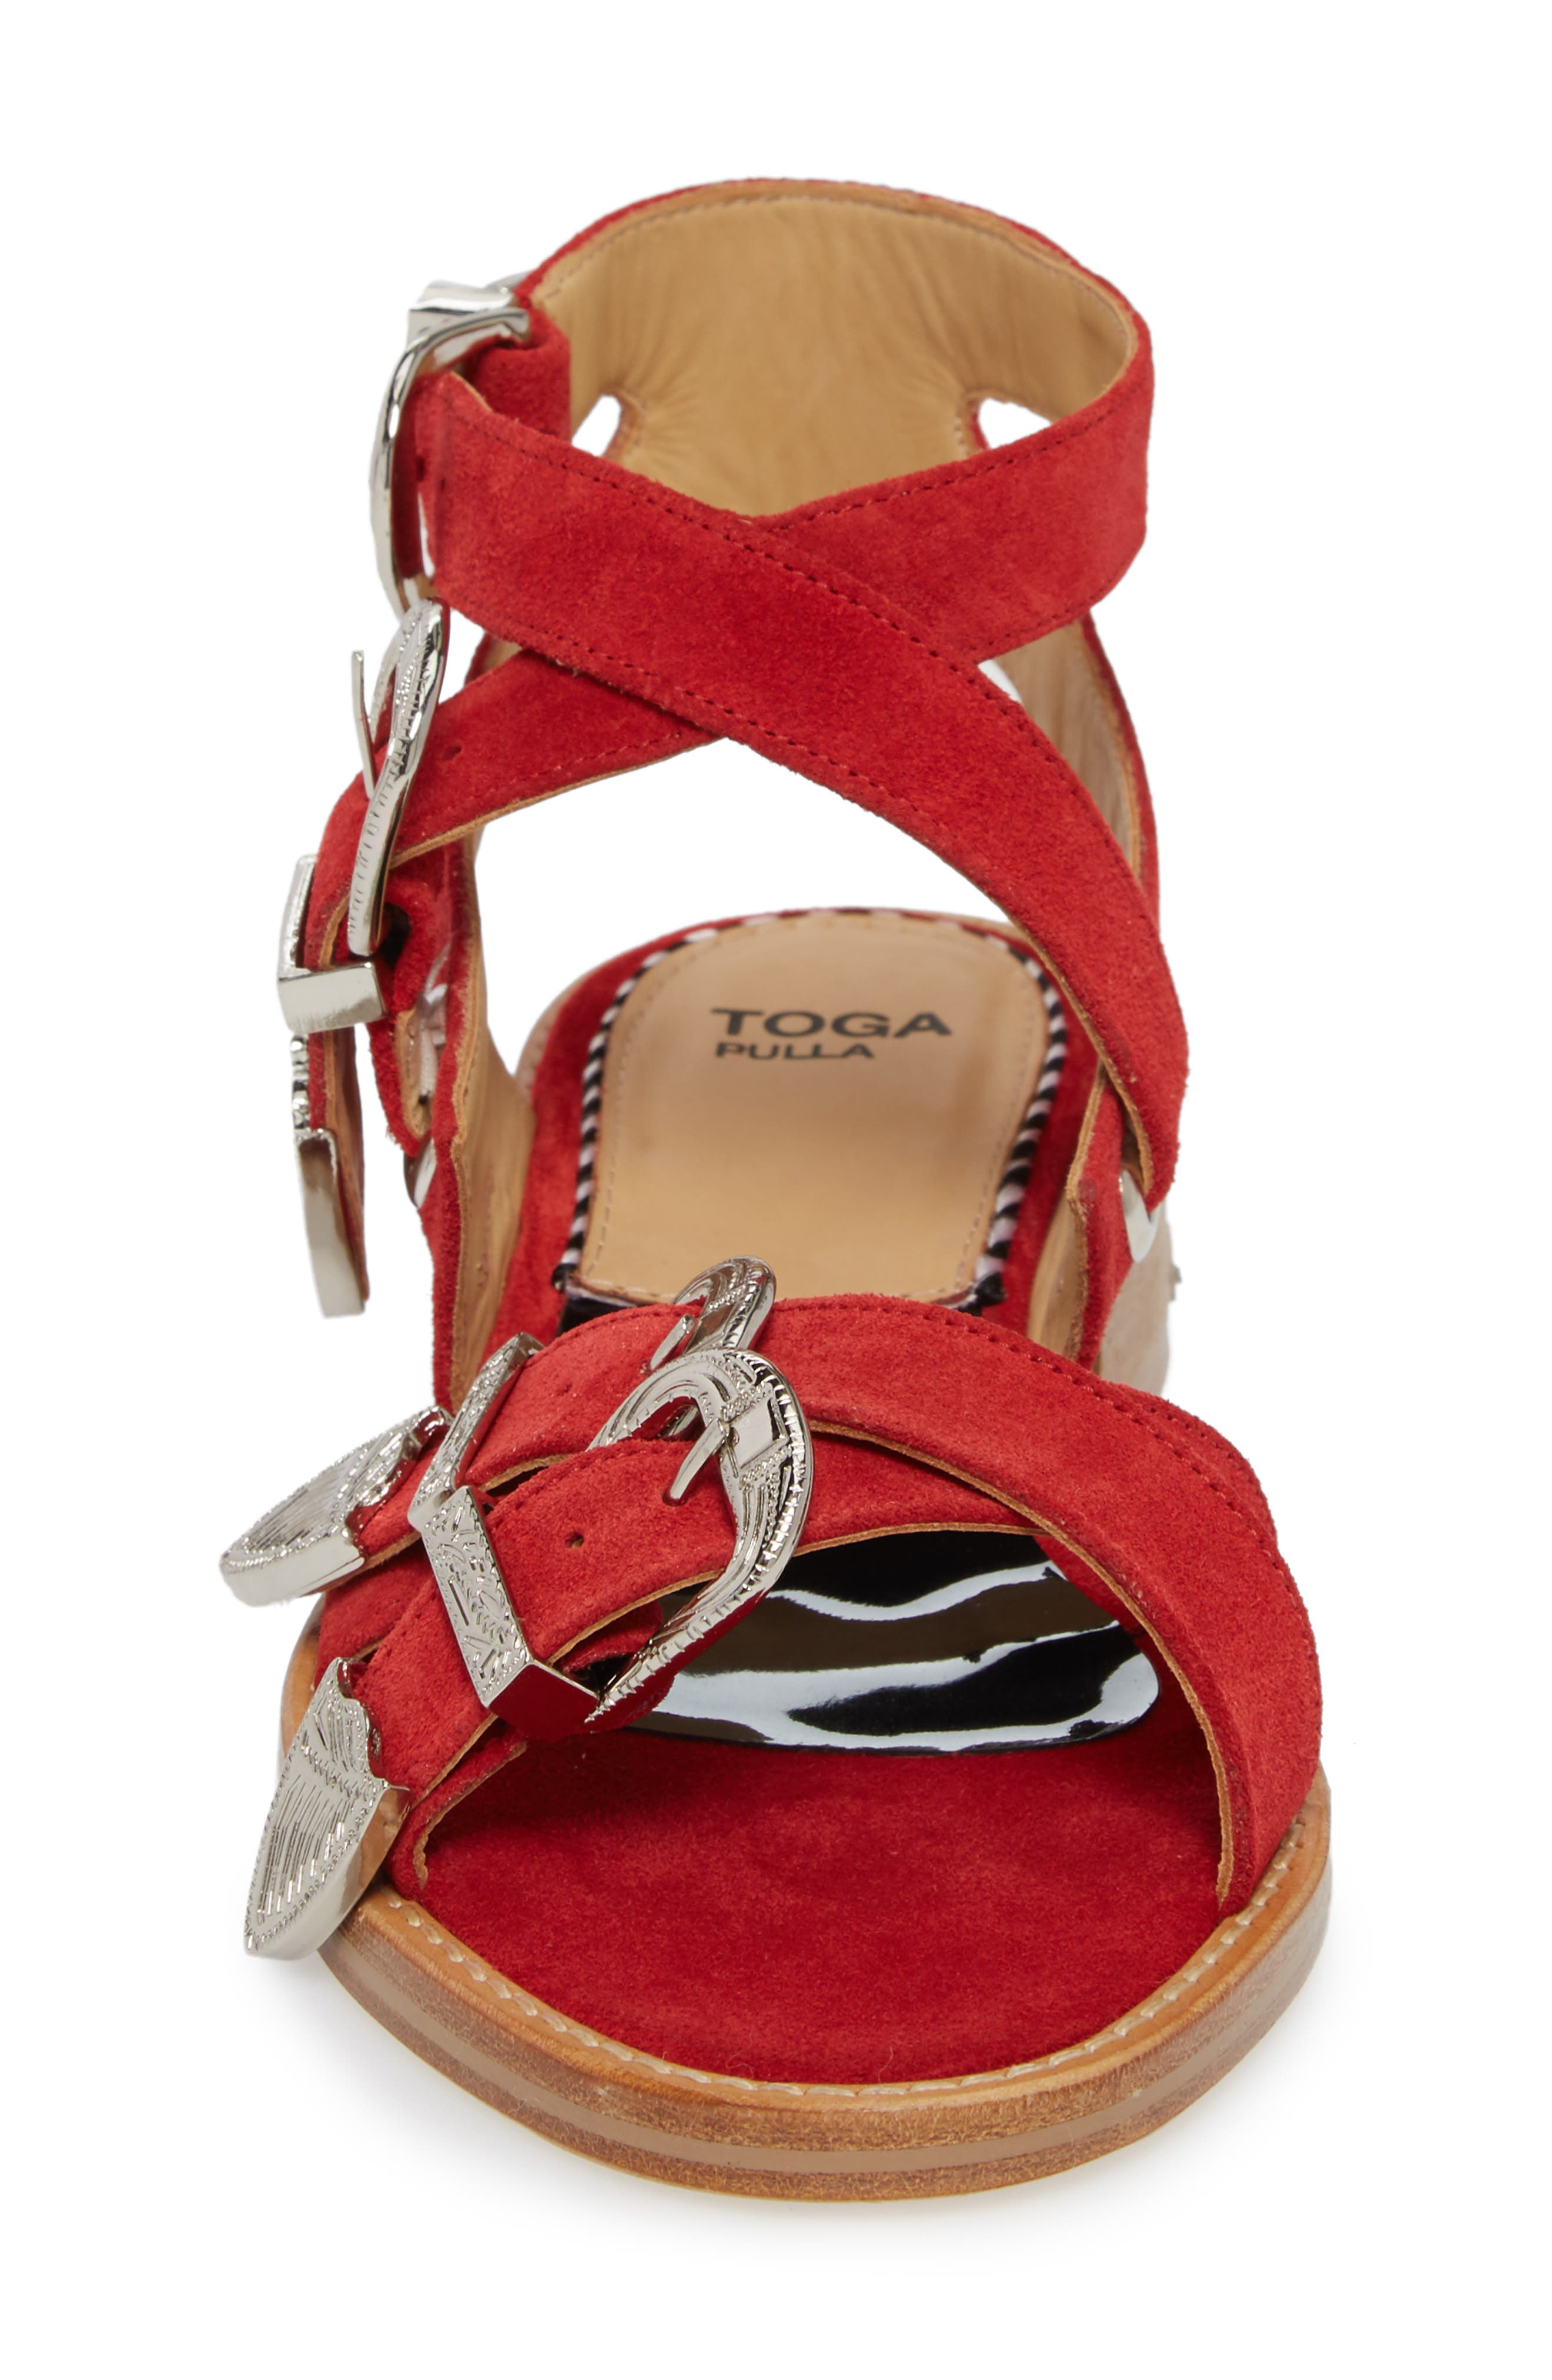 Western Suede Strappy Sandal,                             Alternate thumbnail 4, color,                             Red Suede